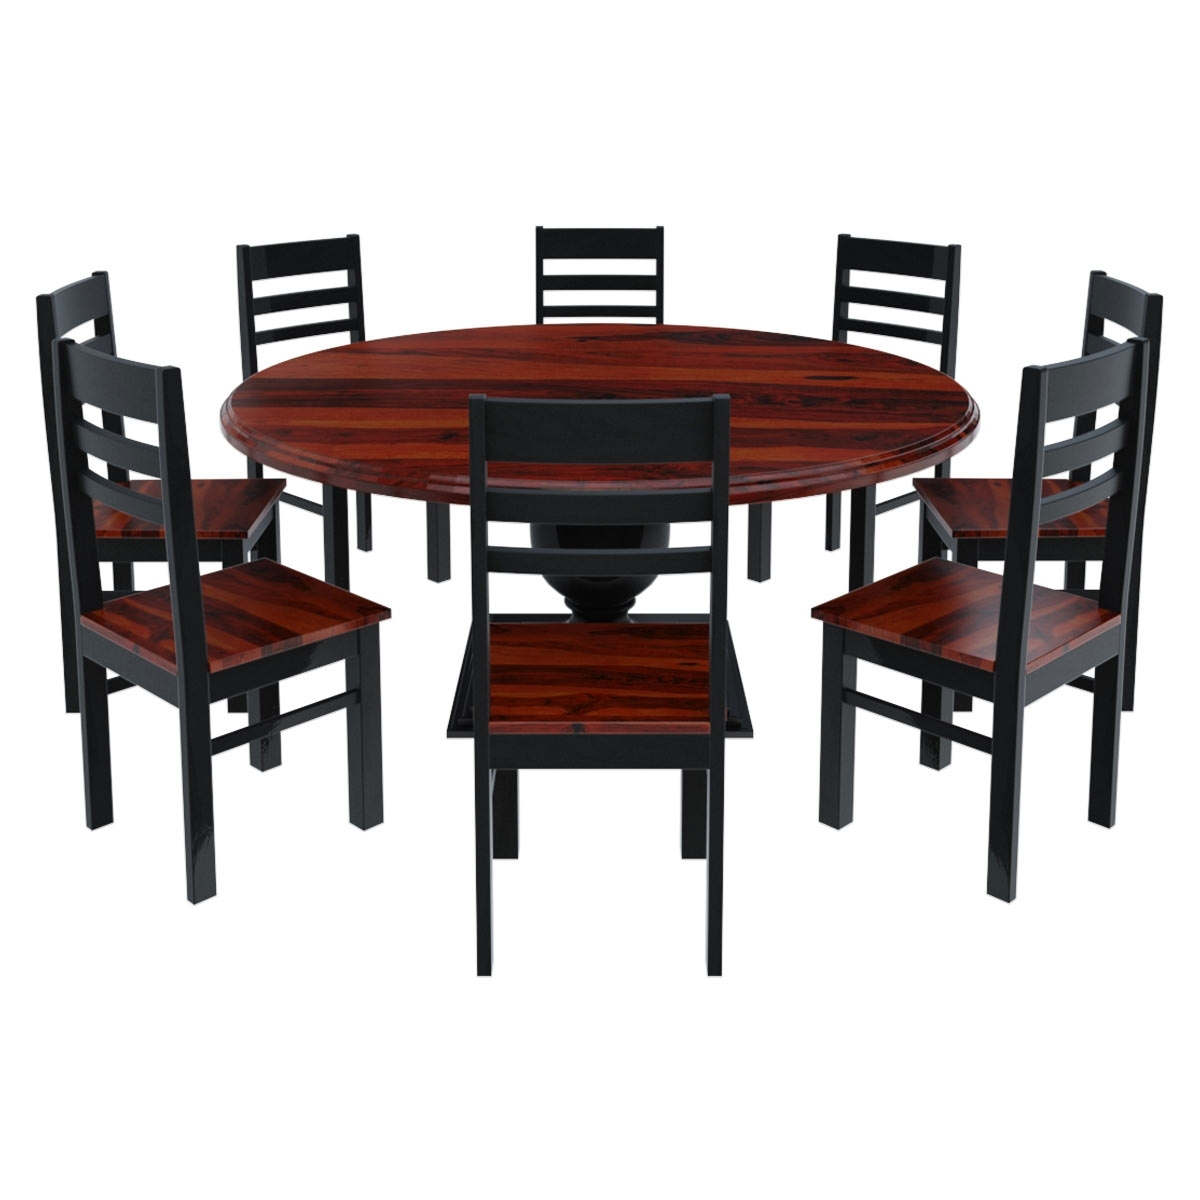 Dining Tables 8 Chairs Set for Most Recently Released Illinois Modern Two Tone Large Round Dining Table With 8 Chairs Set